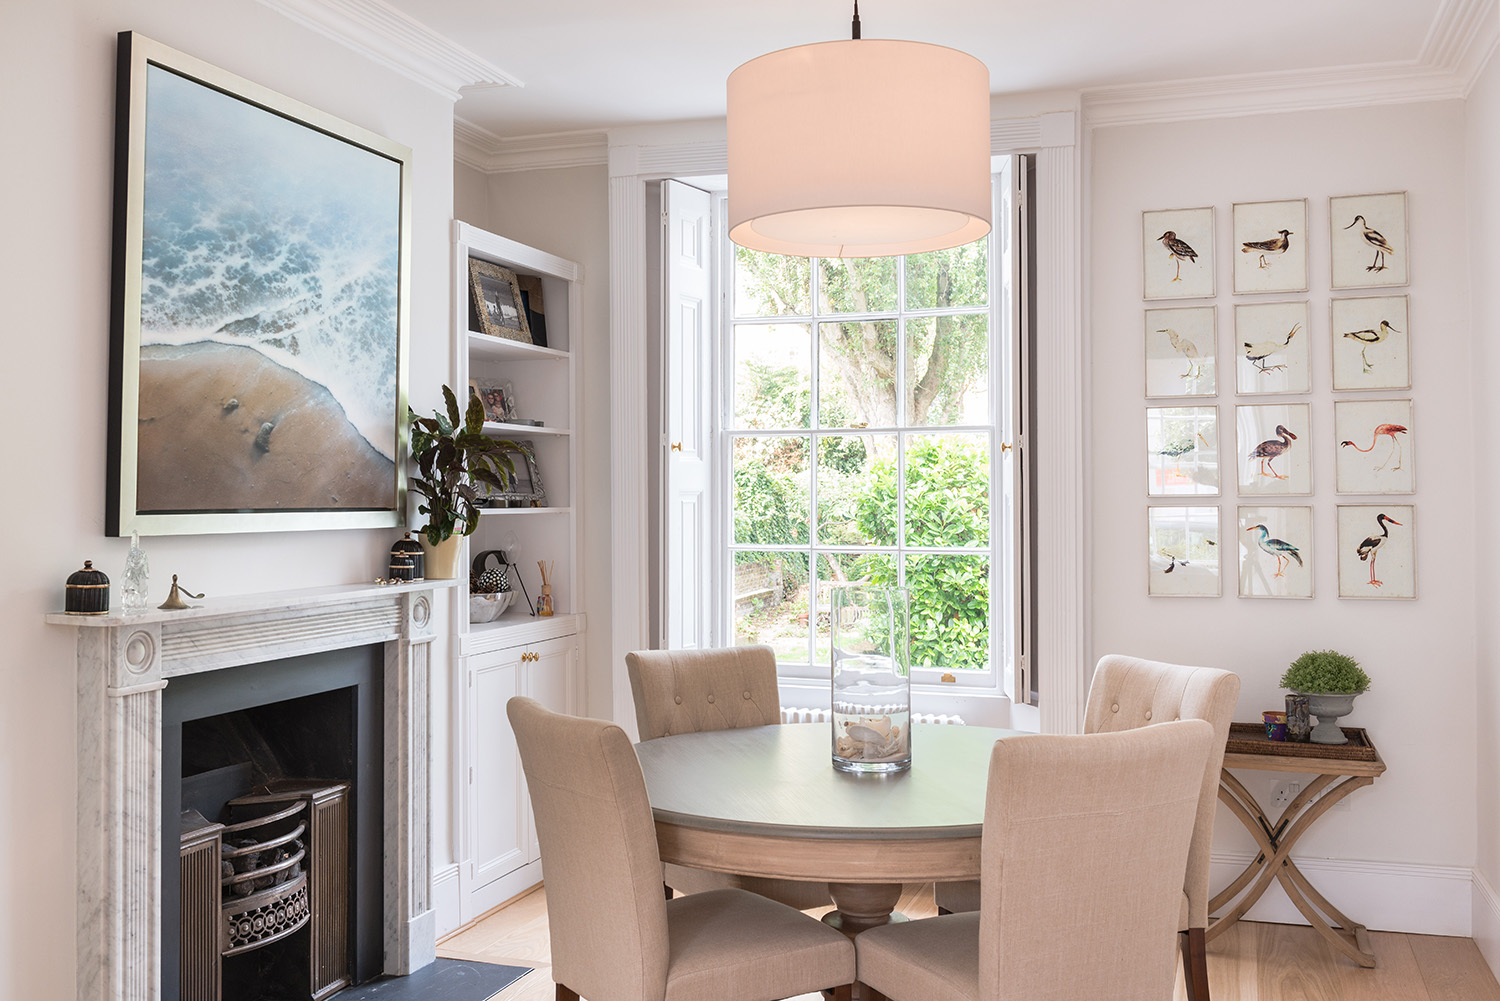 Design Box London - Interior Design - Hampstead Heath Family Home NW3 - Dining Room